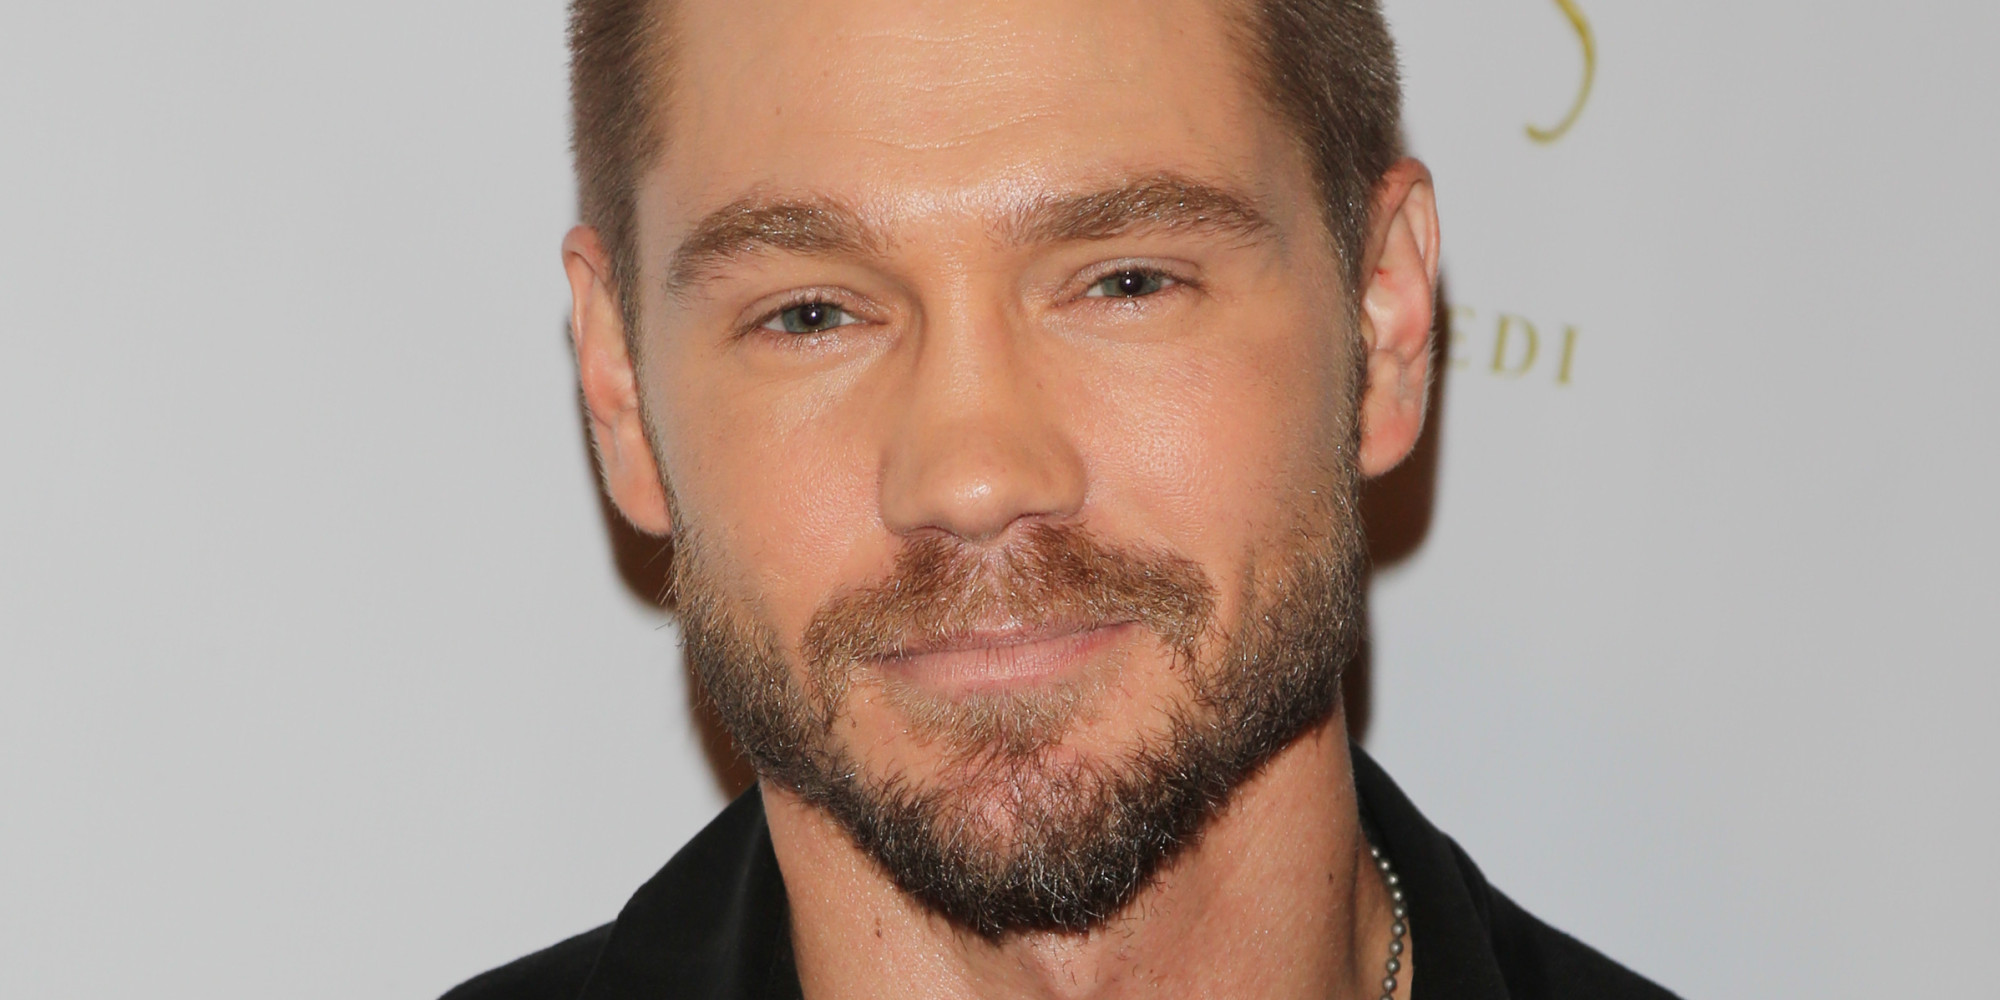 chad michael murray filmschad michael murray gif, chad michael murray 2016, chad michael murray 2017, chad michael murray and hilary duff, chad michael murray son, chad michael murray height, chad michael murray vk, chad michael murray 2014, chad michael murray one tree hill, chad michael murray wiki, chad michael murray 2003, chad michael murray films, chad michael murray kinopoisk, chad michael murray tumblr gif, chad michael murray gallery, chad michael murray supernatural, chad michael murray kiss scenes, chad michael murray sarah roemer, chad michael murray 2005, chad michael murray kenzie dalton